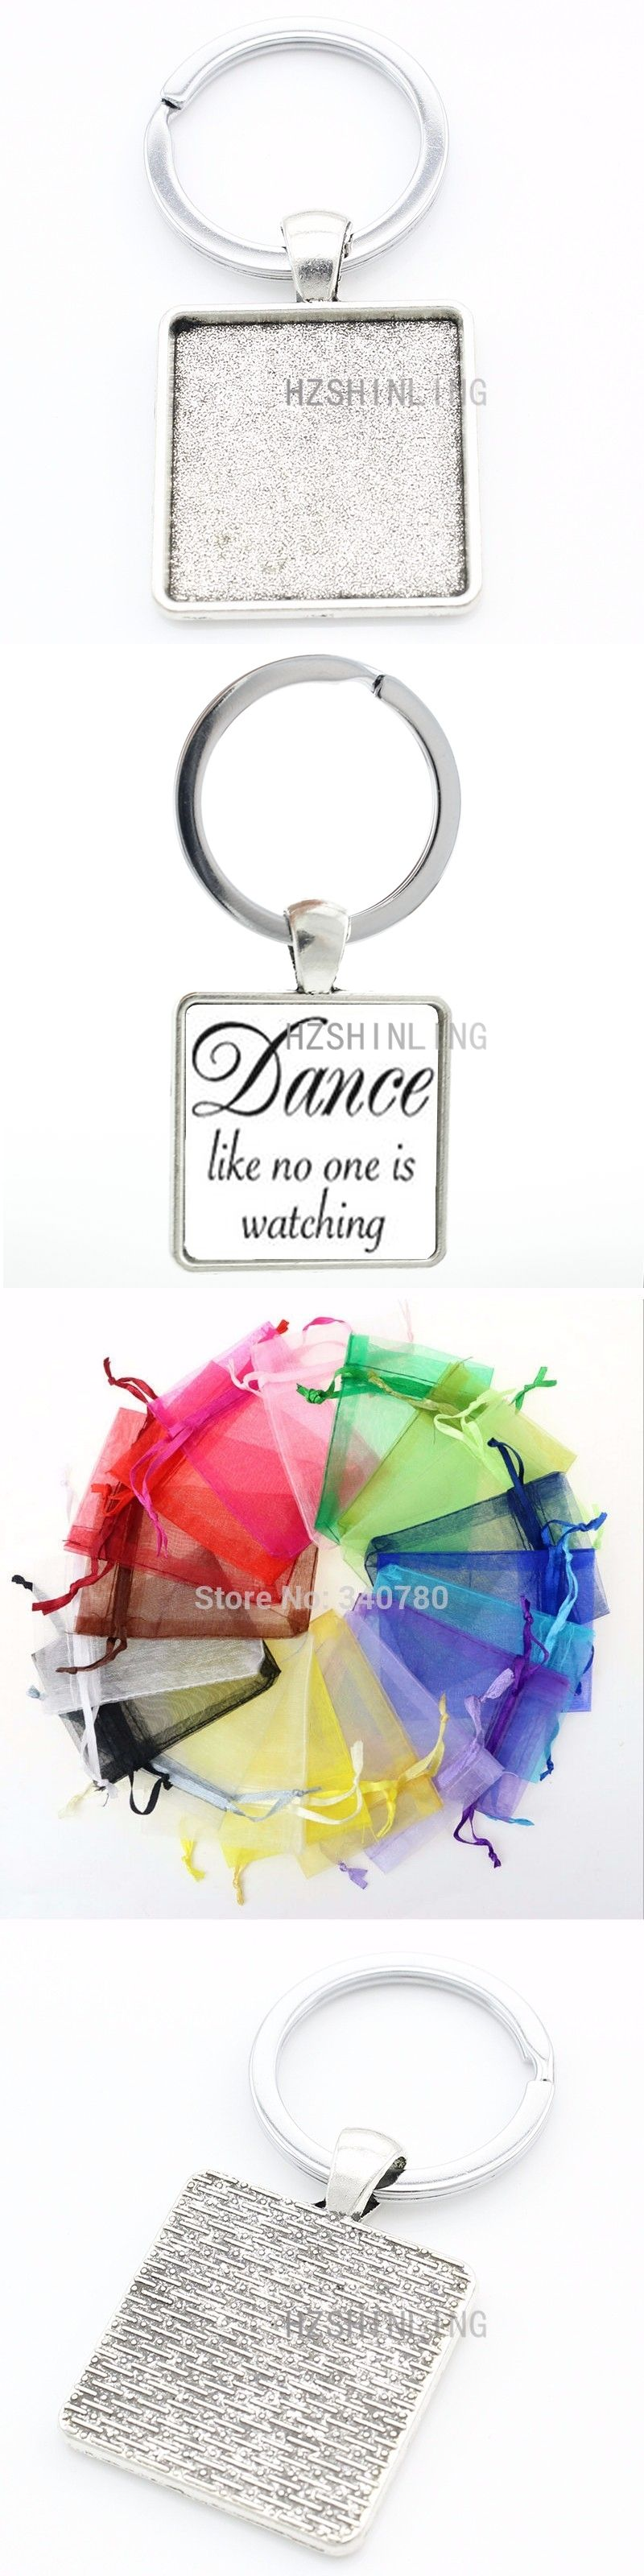 Vintage Dance Quote keychain Dance Like No One Is Watching keyring fashion  dancing dancer key chain 4e0ebad3f9